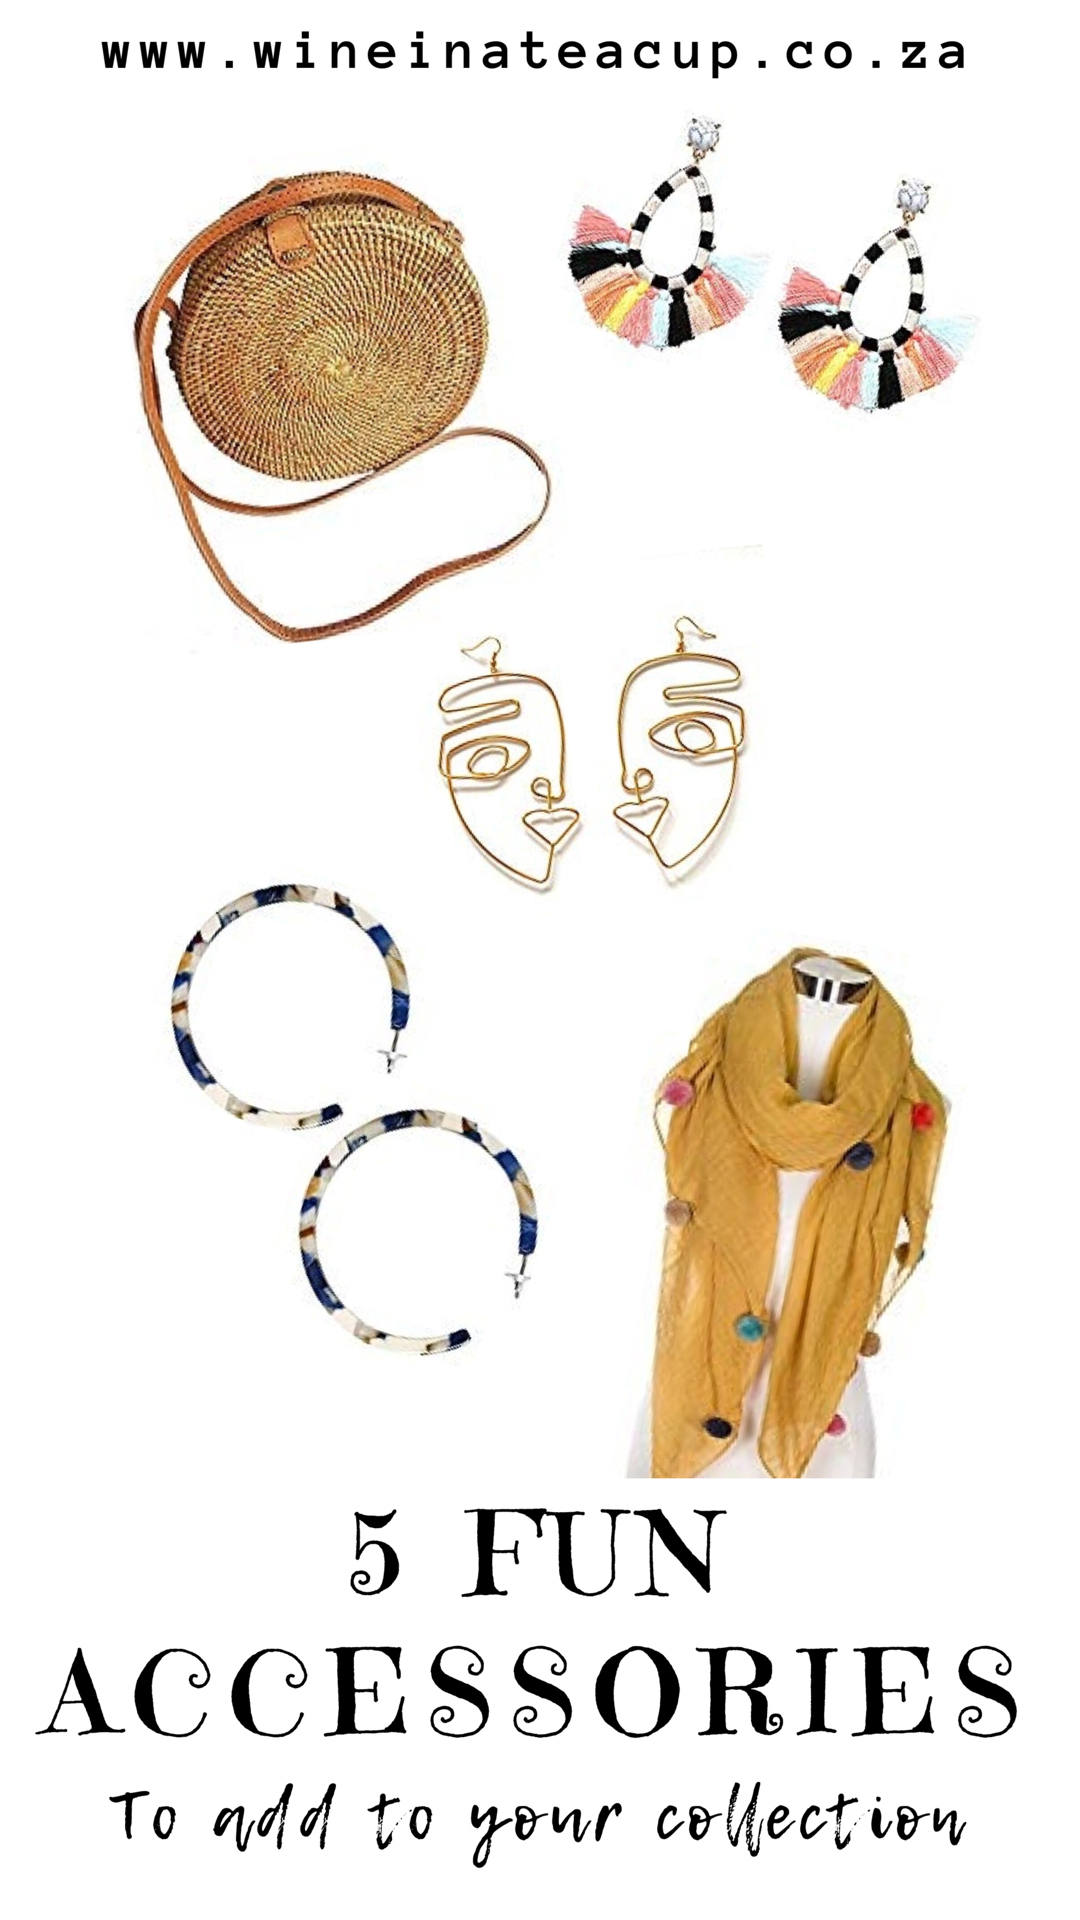 5 Fun accessories to add to your collection. statement earrings   straw bags   accent scarves...all to spice up and modernise your outfit